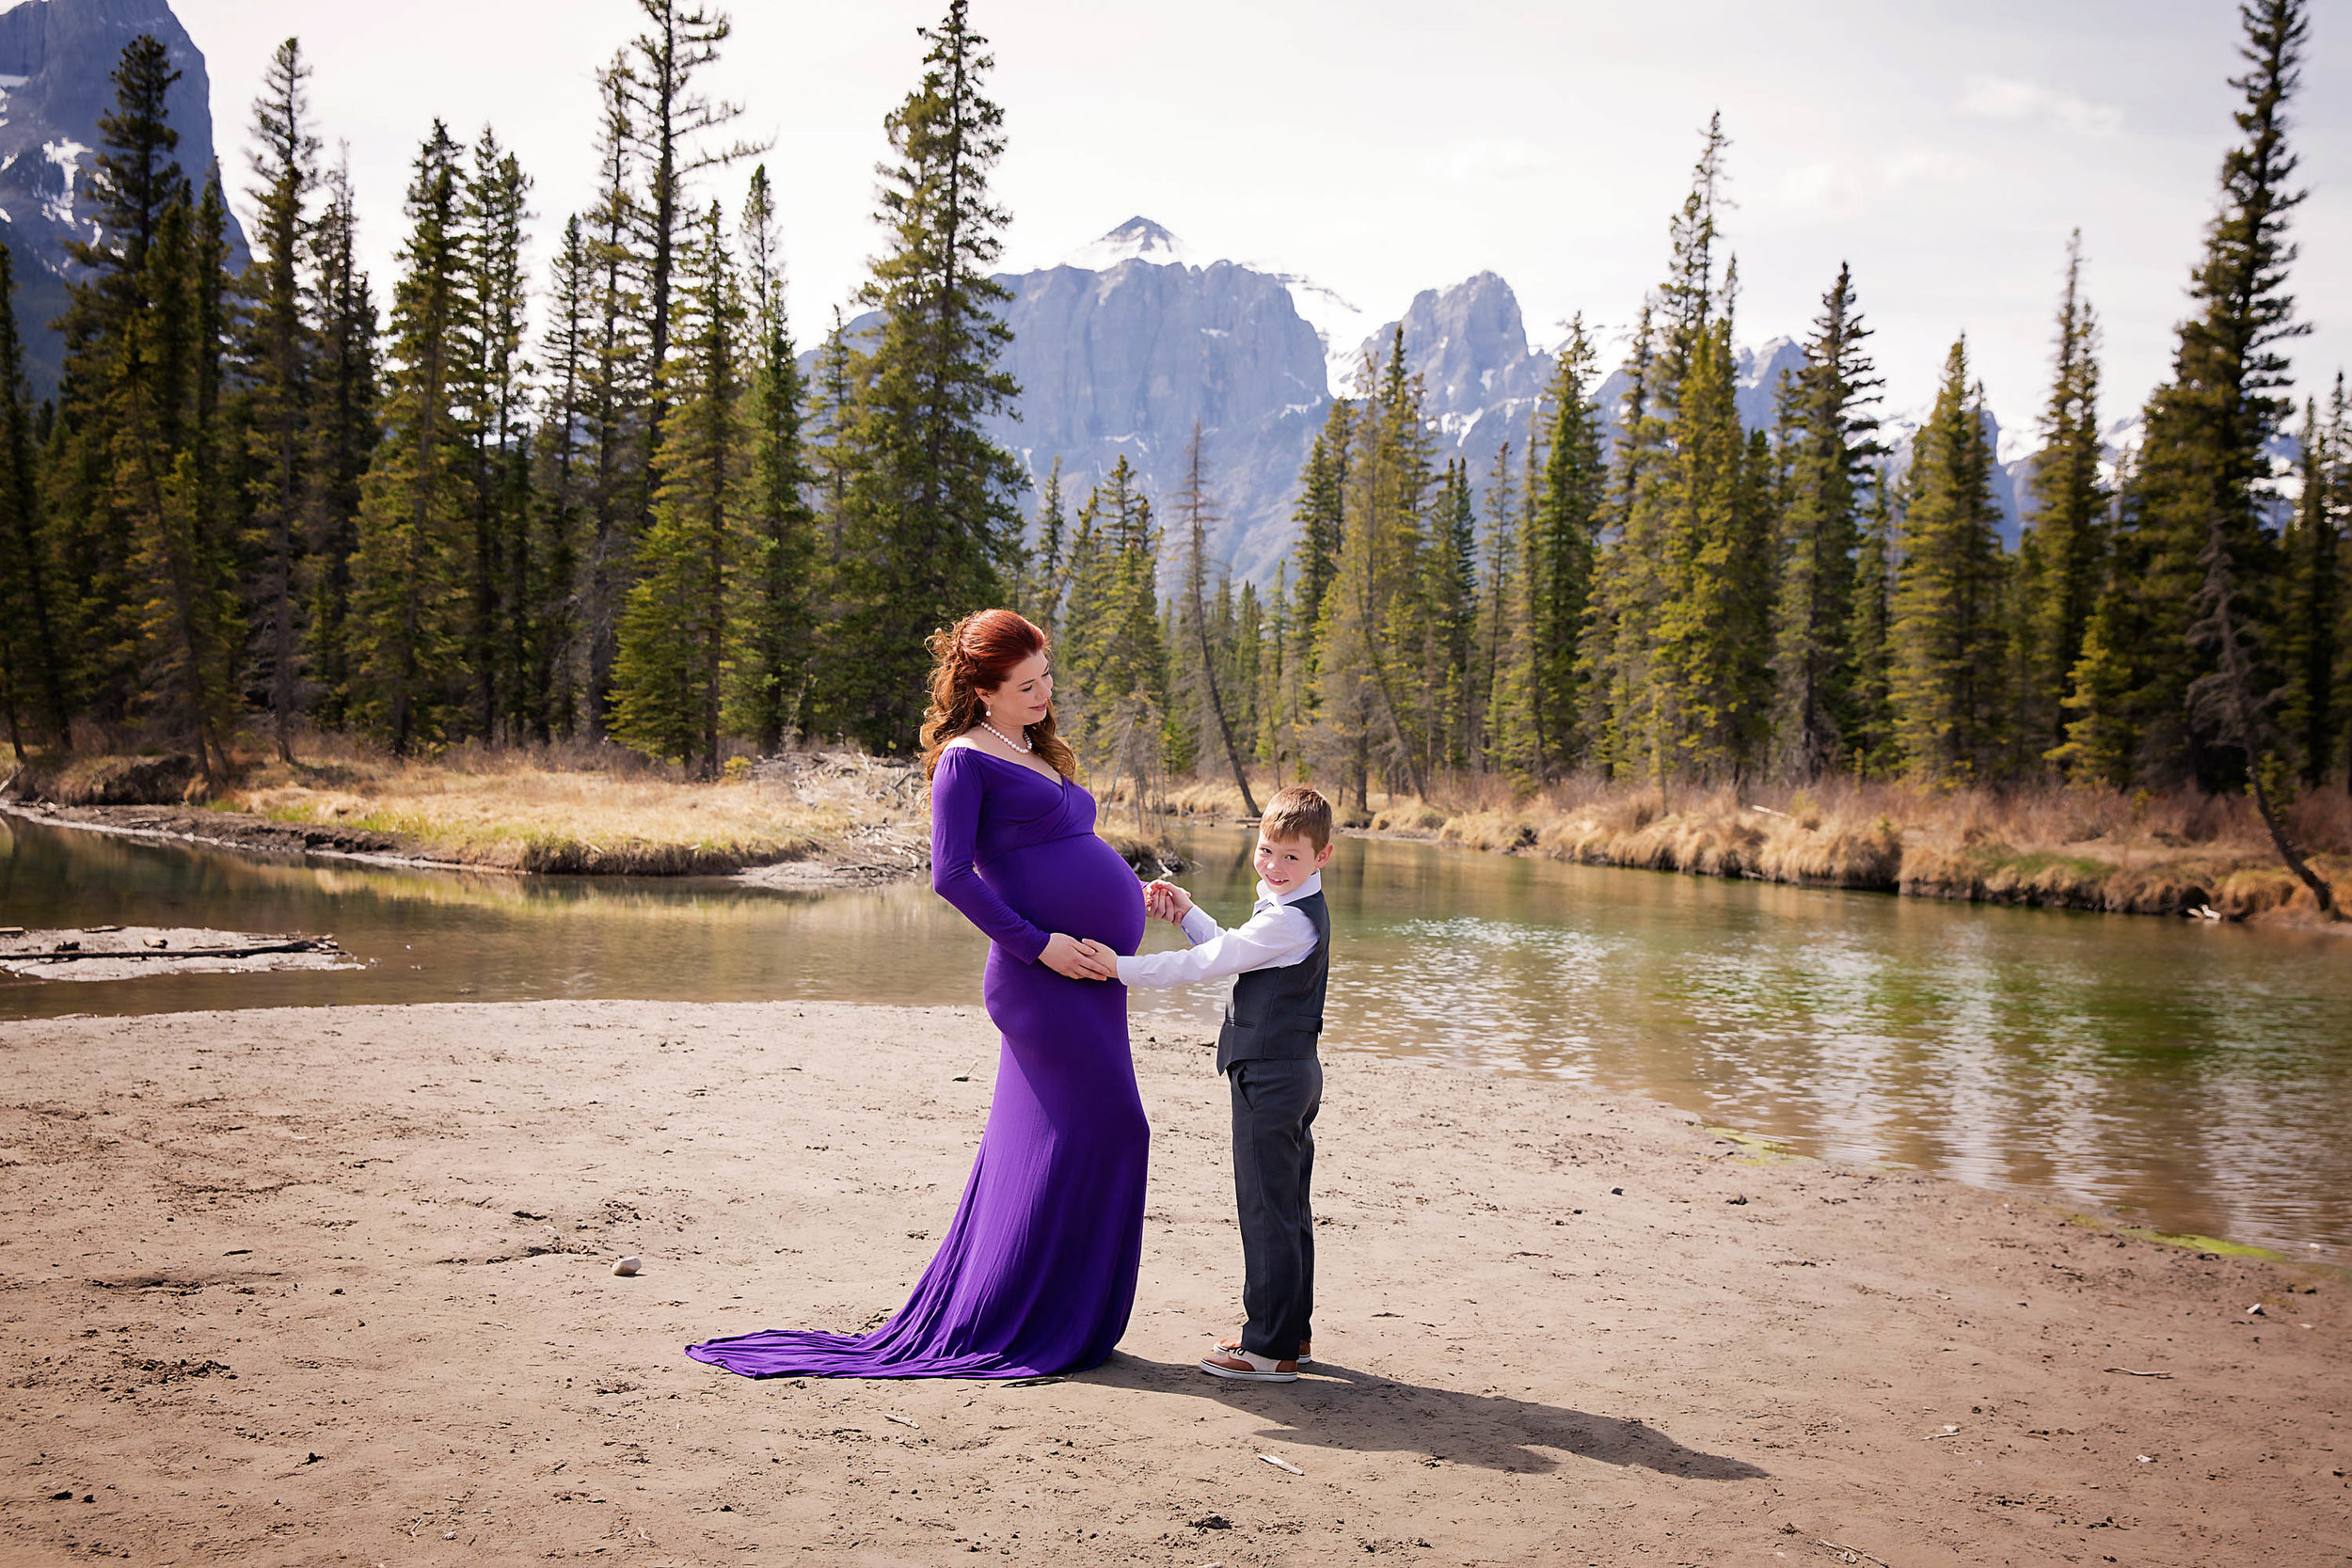 Mother and son maternity in the mountains shot. Mom to be is wearing a purple gown and looking at her son while a 7 year old boy is looking straight at the camera and smiling. Calgary maternity photographer - Milashka Photography